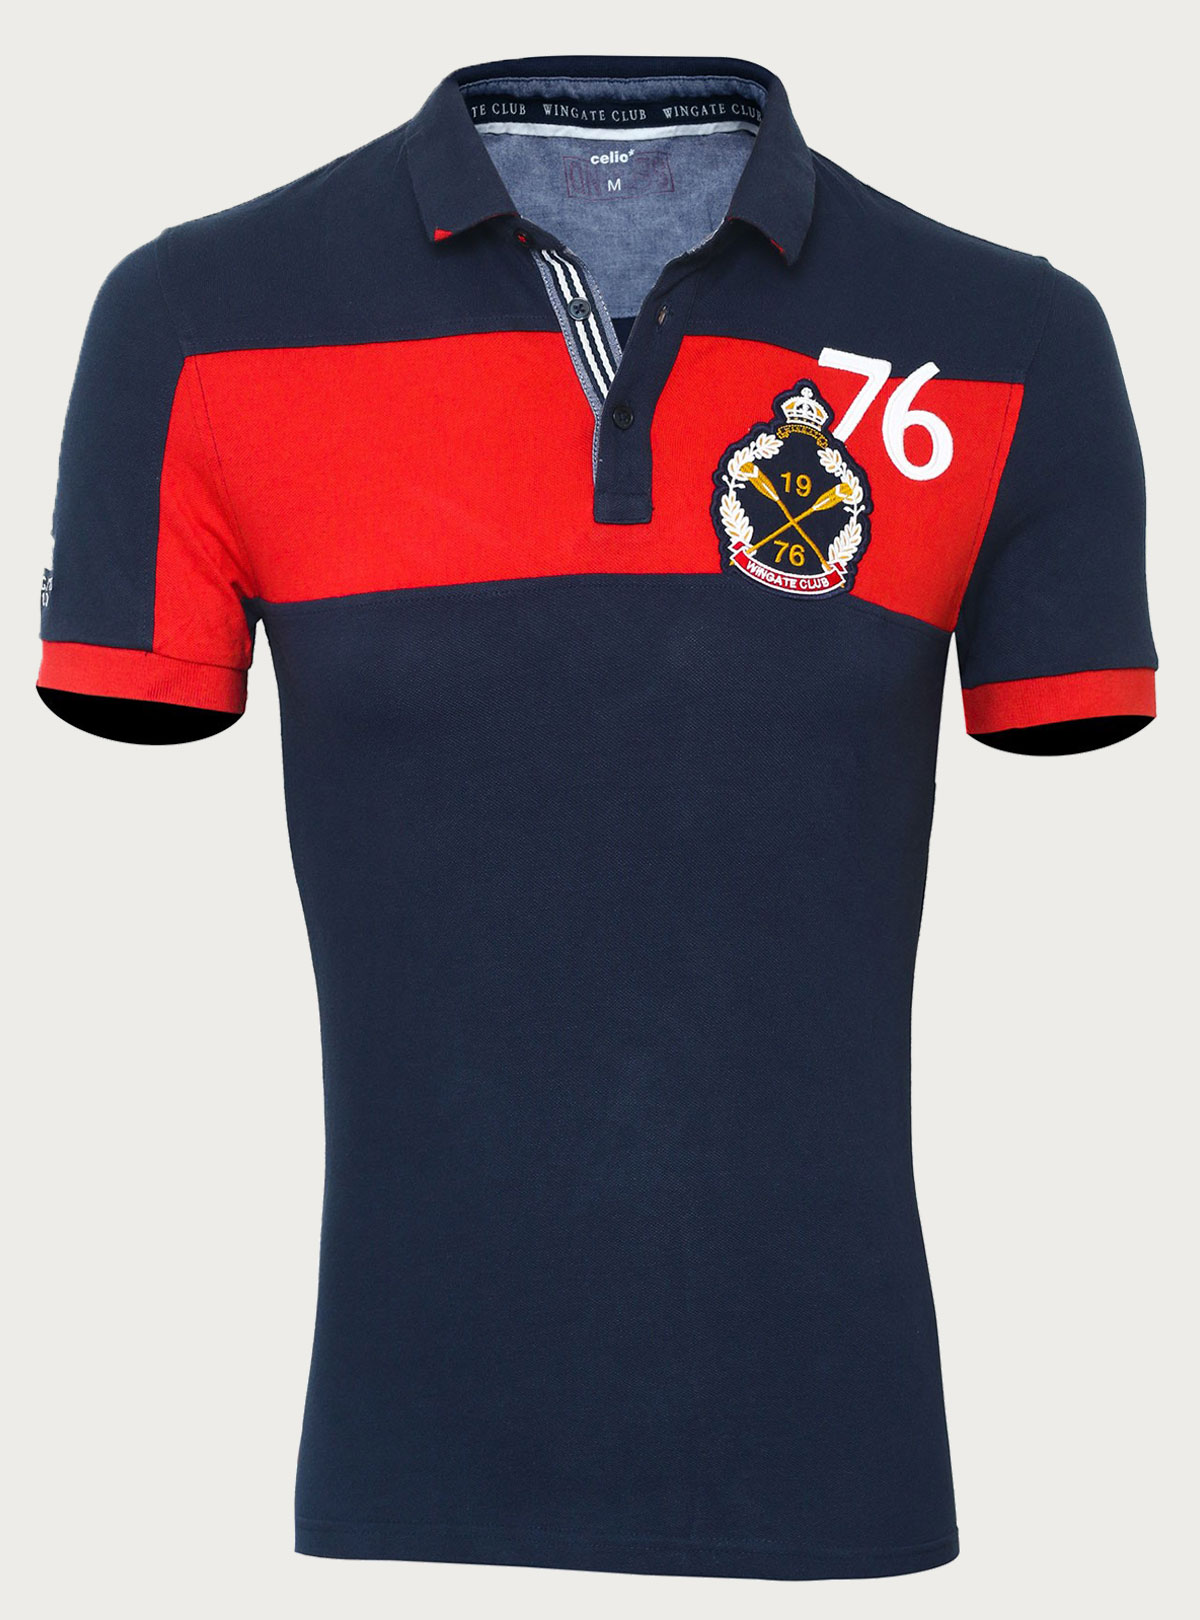 STYLISH POLO T-SHIRT BY-CELIO